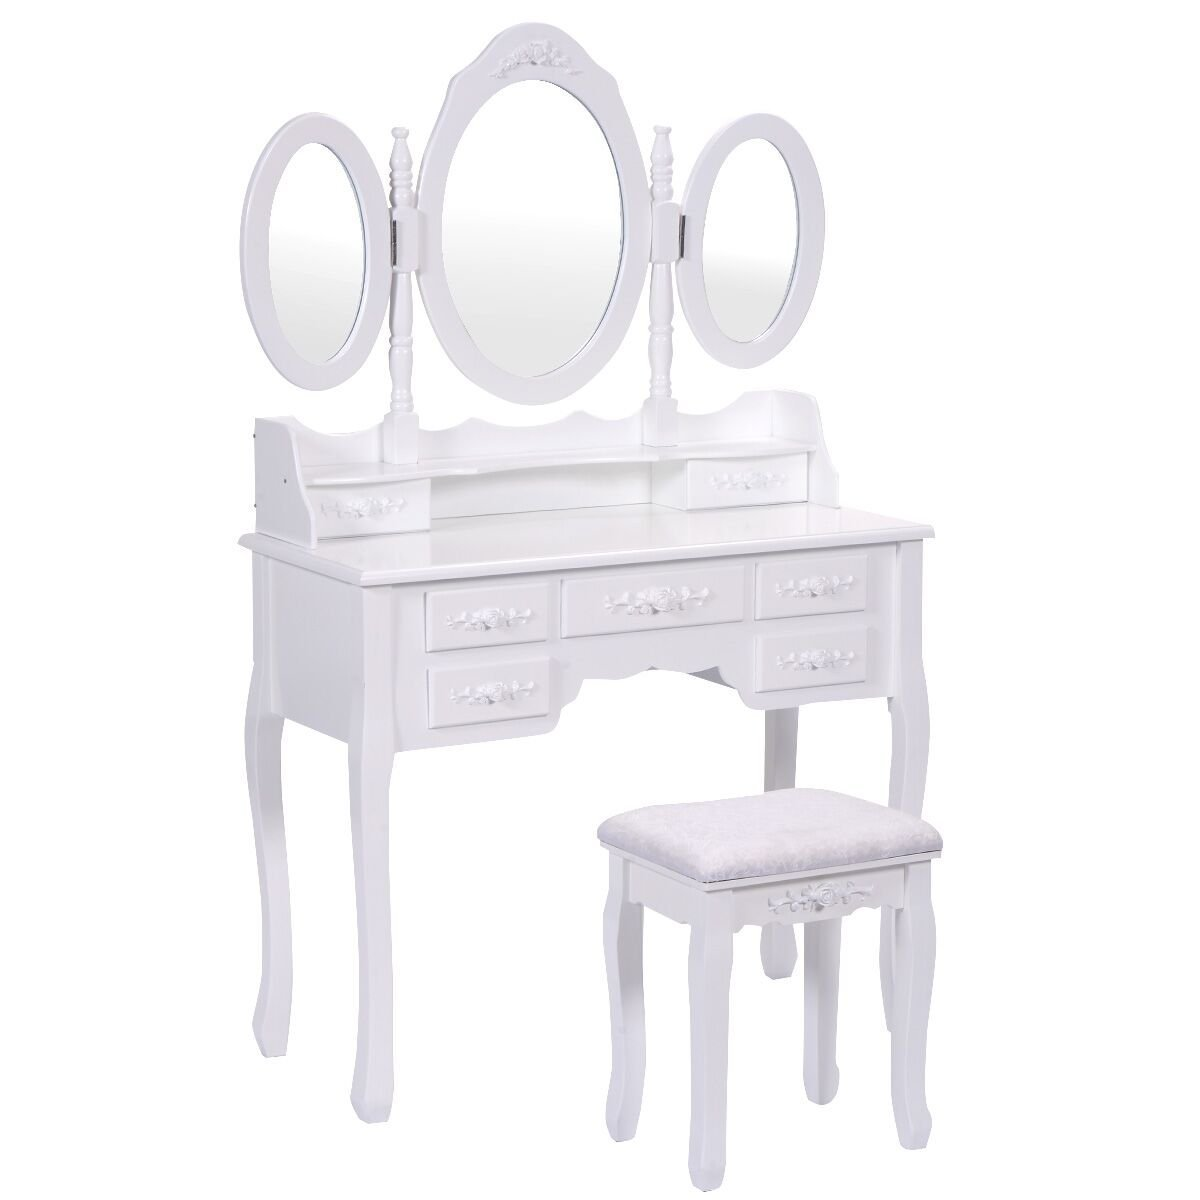 Vanimeu, Tri-folding Oval Mirror Wood Make-up Dressing Table Vanity Desk Padded Stool with 7 Drawers (White)